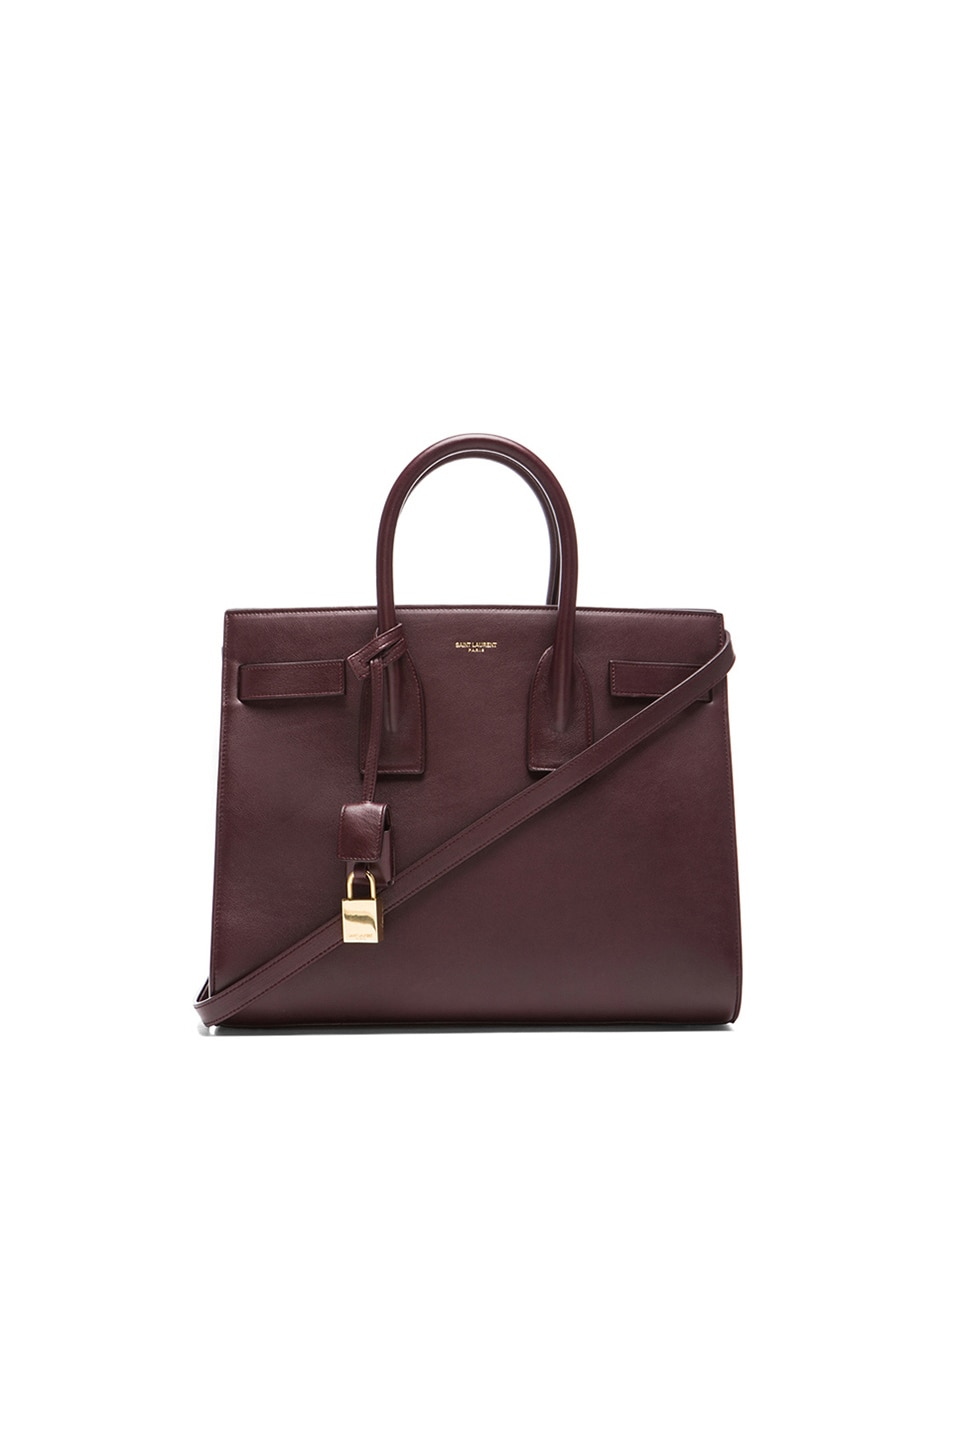 b1b84d1e35a3 Image 1 of Saint Laurent Small Sac De Jour Carryall Bag in Bordeaux